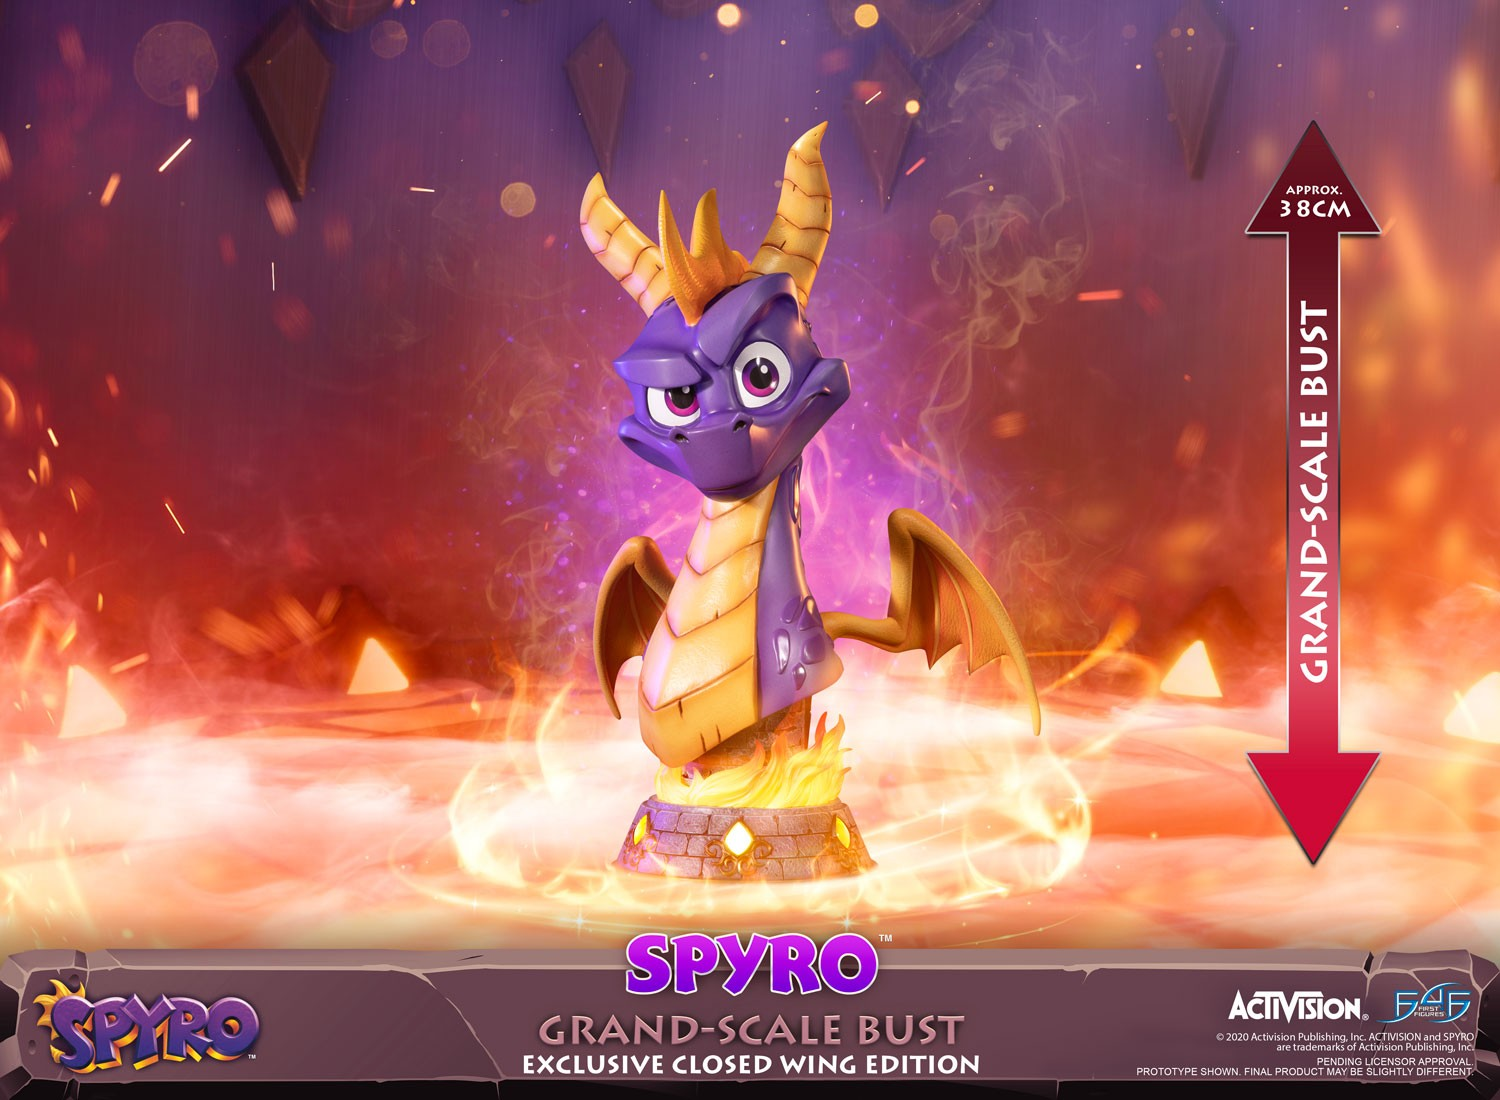 Spyro™ the Dragon – Spyro™ Grand-Scale Bust (Exclusive Closed Wing Edition)